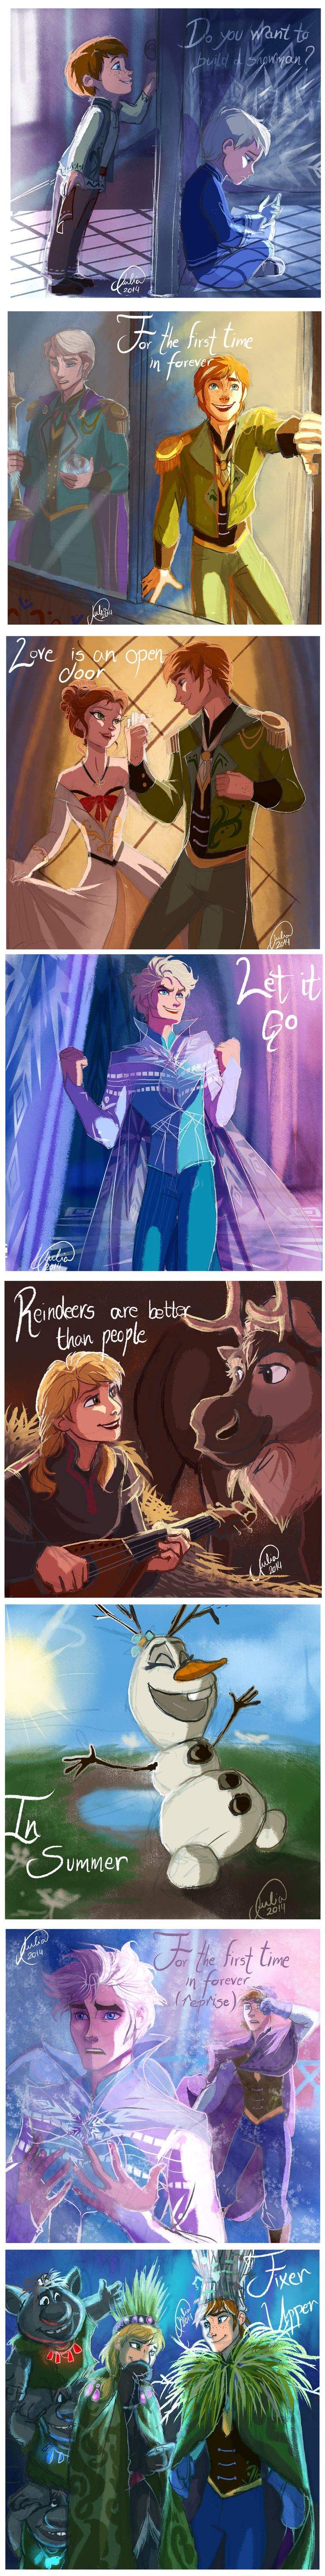 More Frozen genderbending.AND I LOVE HANNA(Hans) SHE LOOKS PRETTY BUT EVIL AT THE SAME TIME!!!!!!